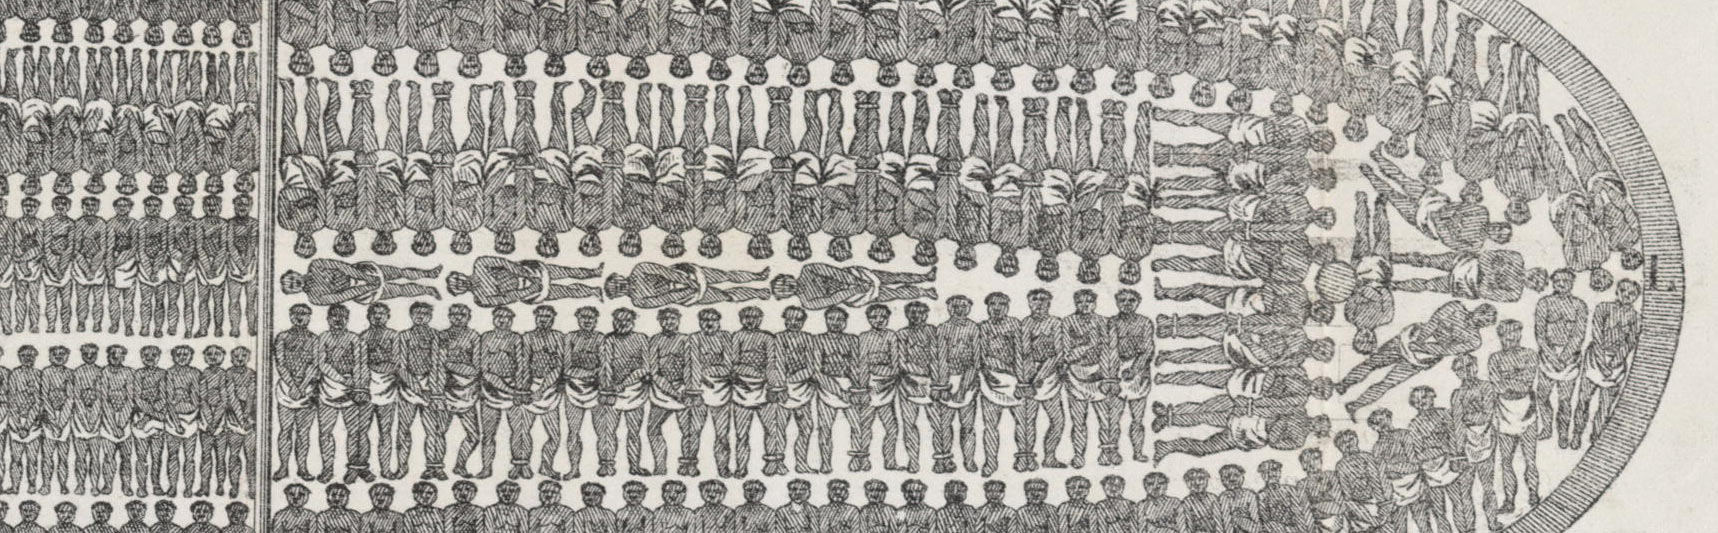 Stowage of the British Slave Ship - Regulated Slave Trade Infoghraphic